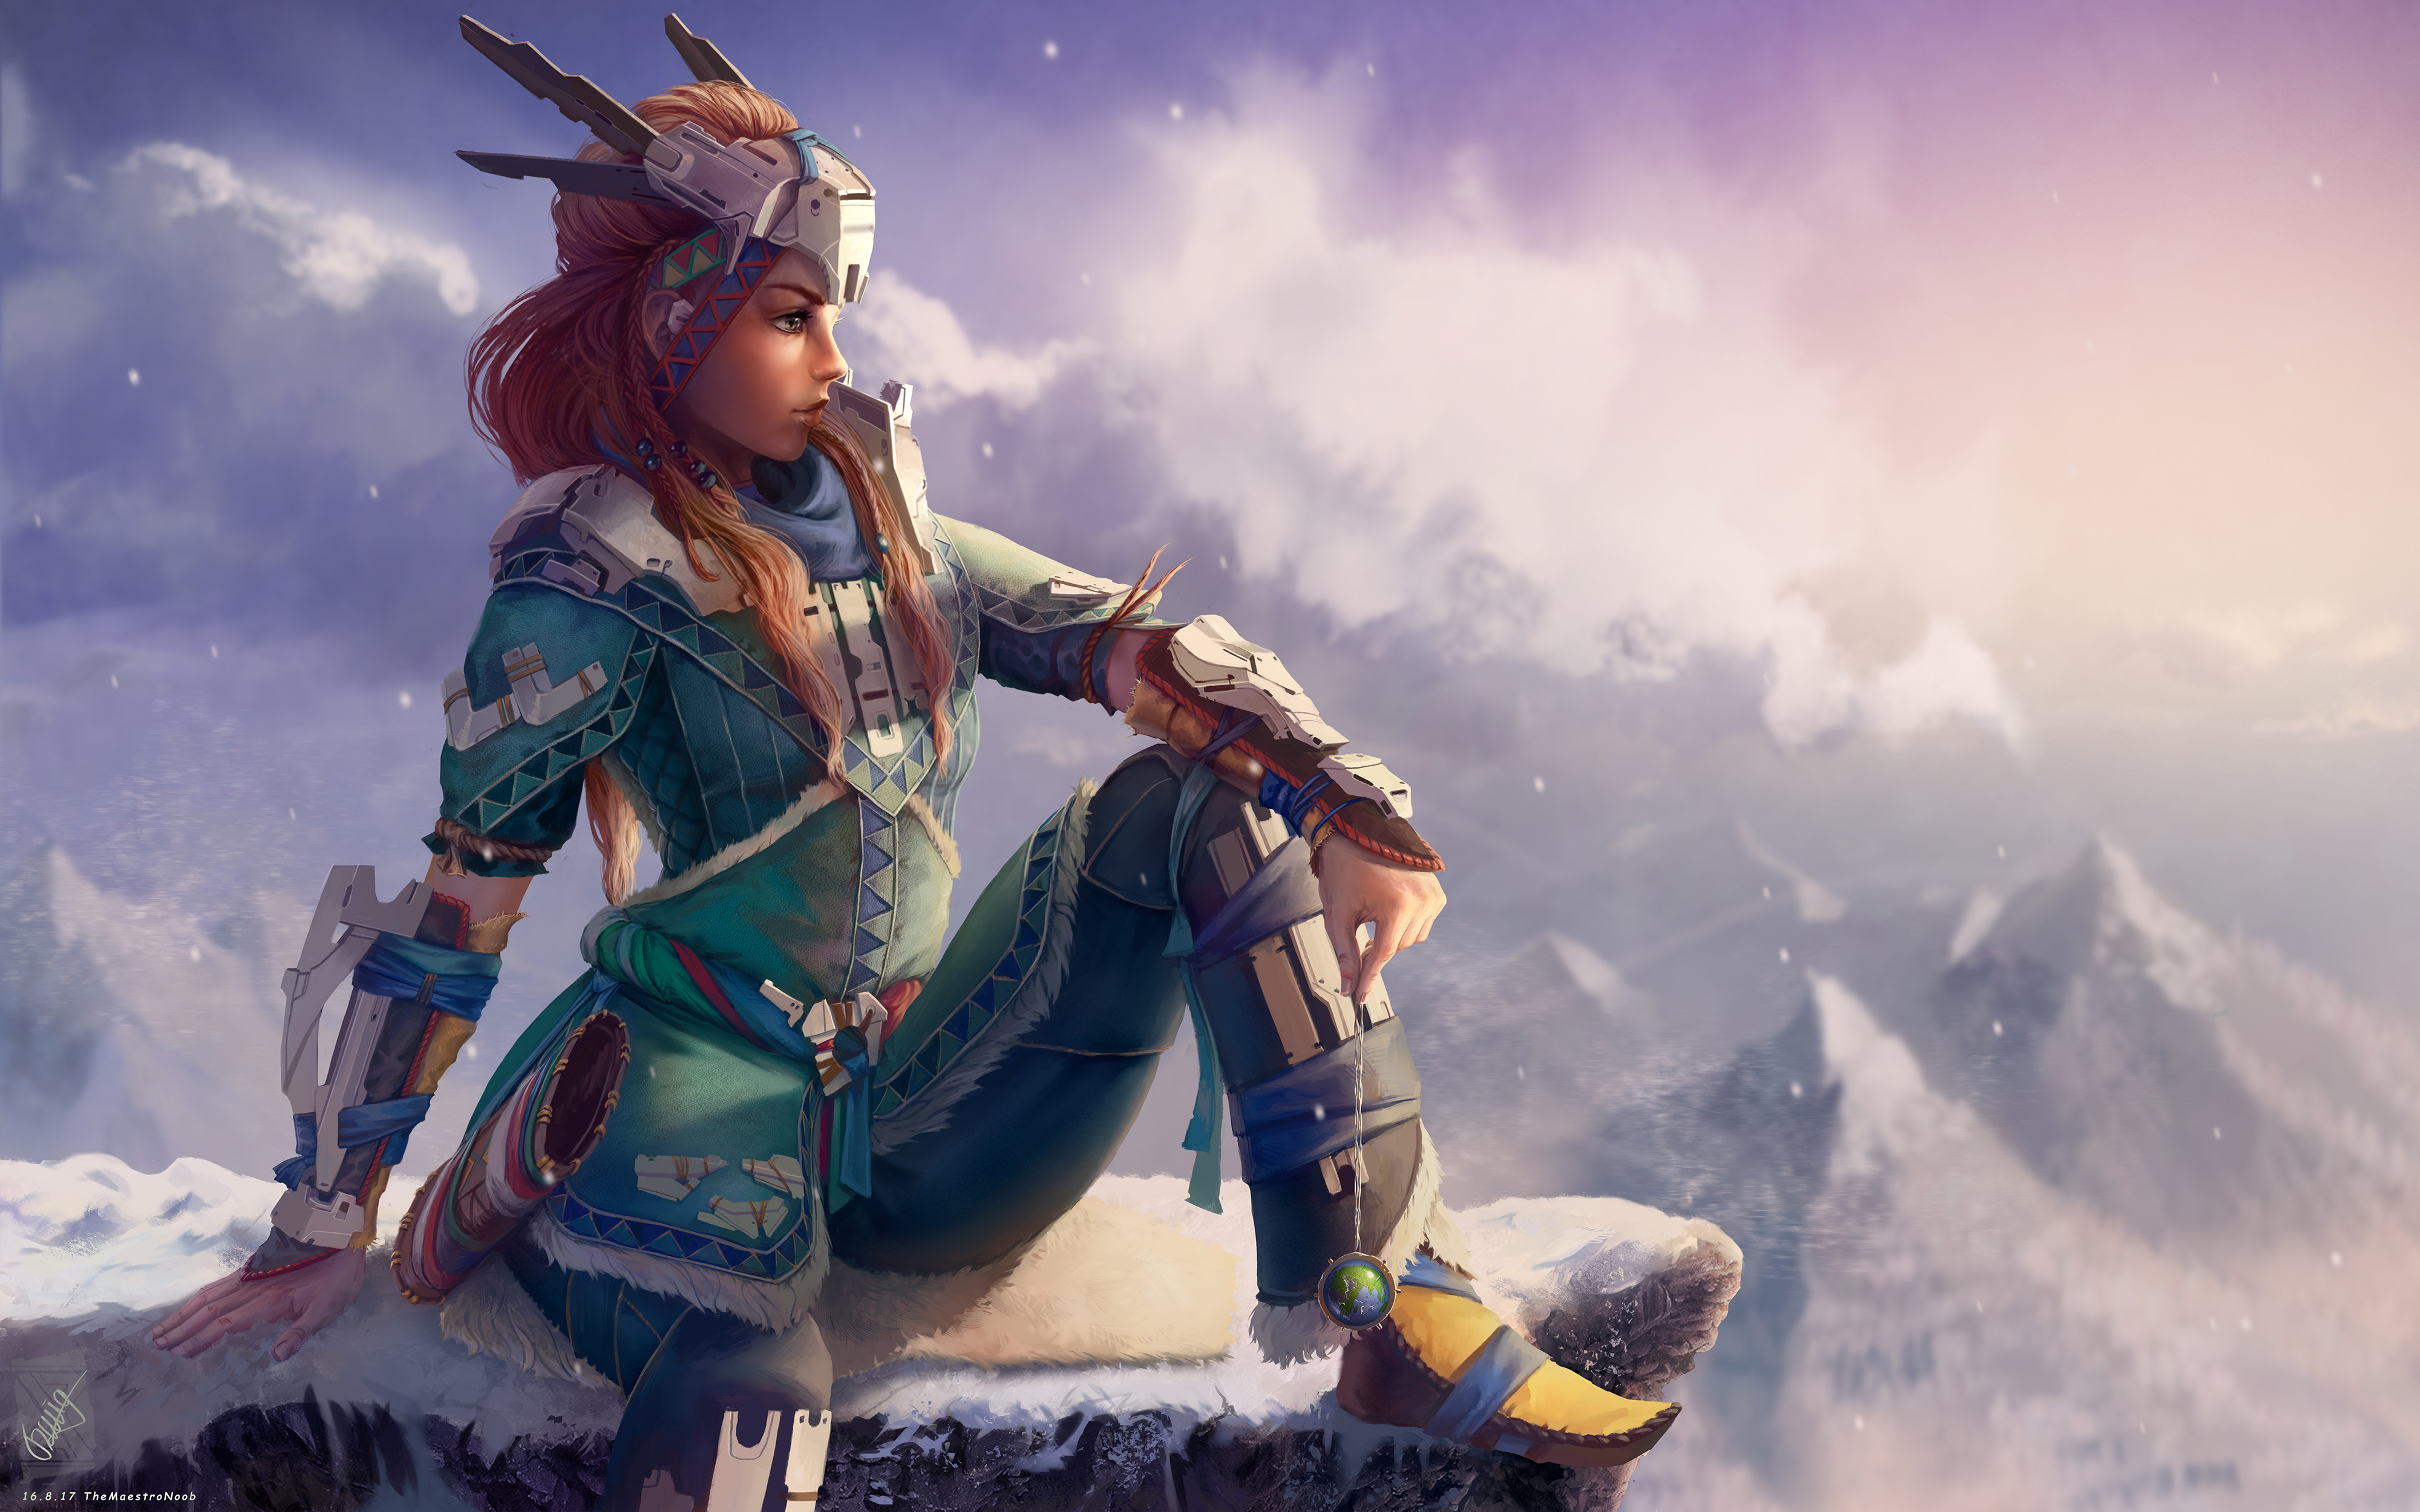 Horizon zero dawn aloy artwork hd games 4k wallpapers - Horizon zero dawn android wallpaper ...